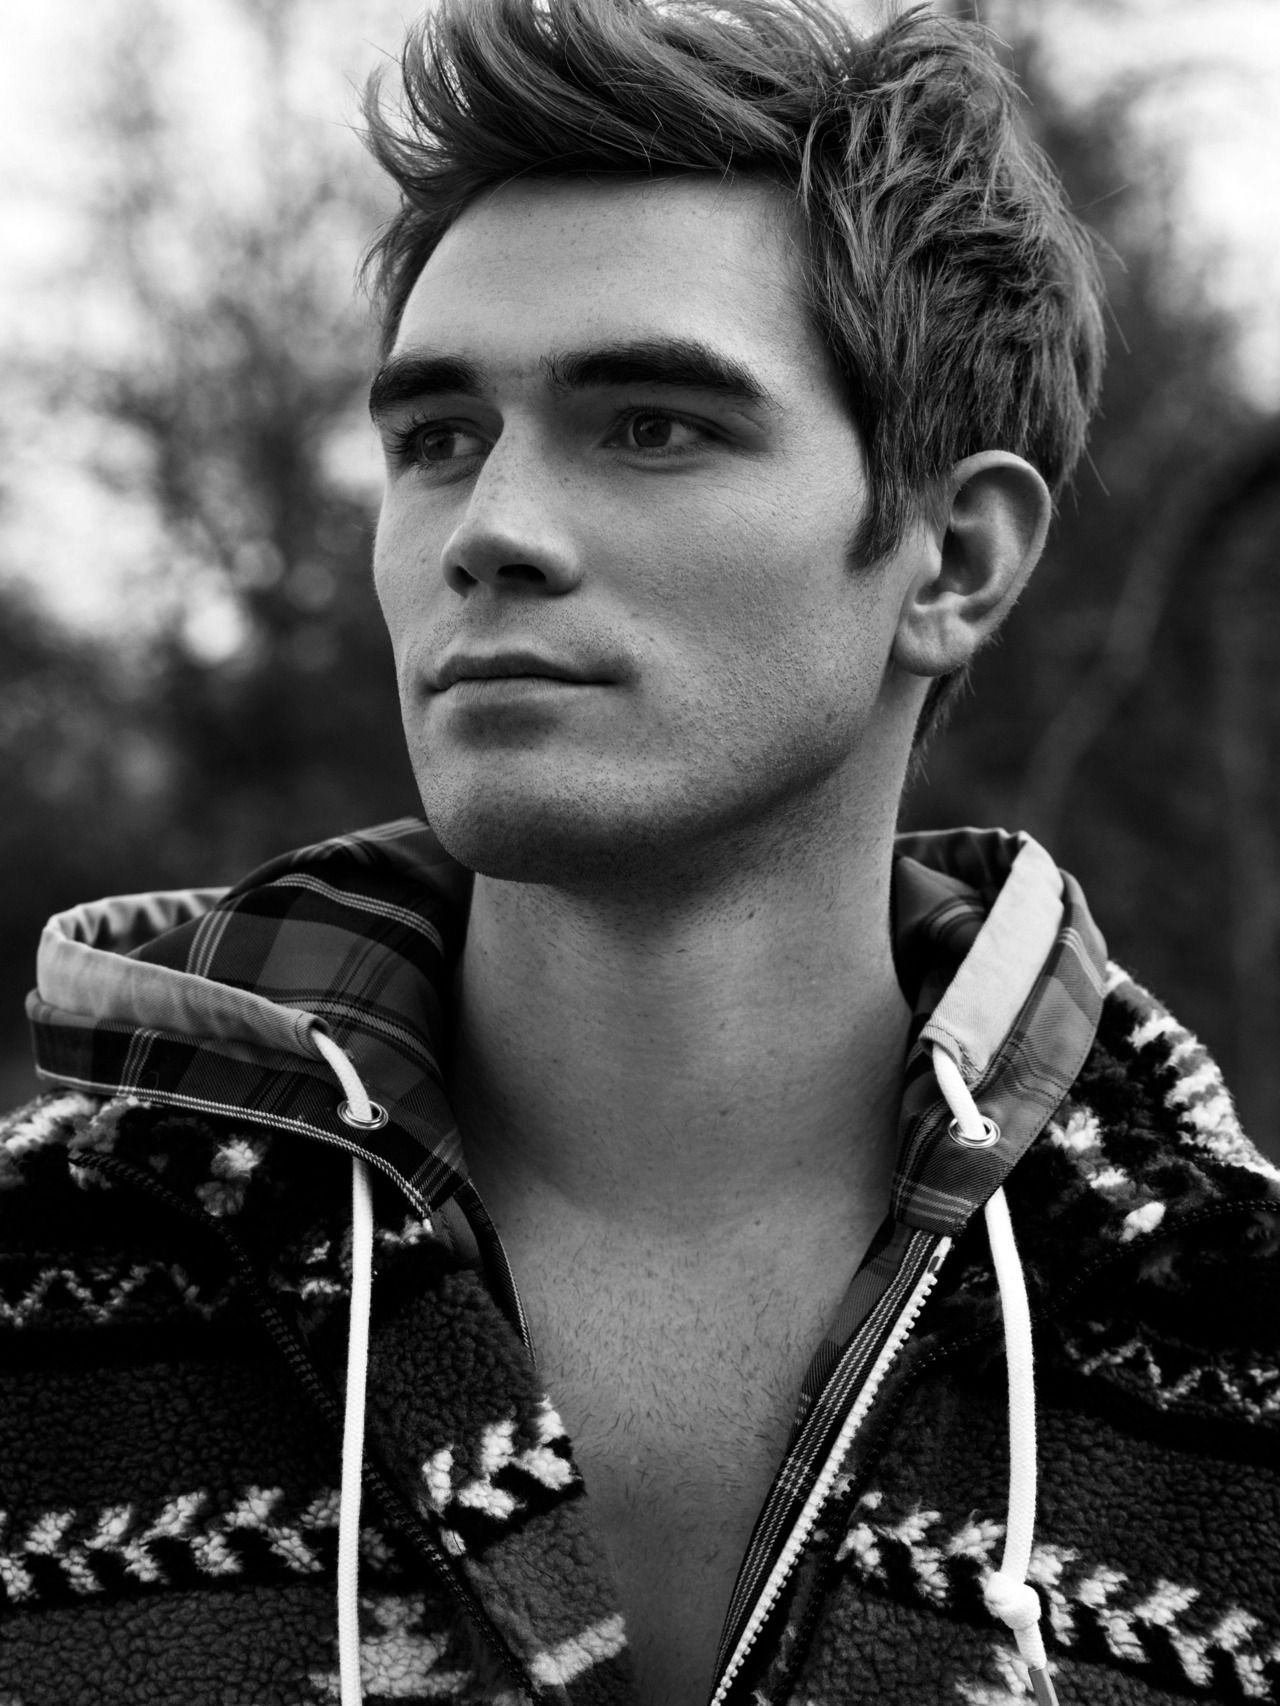 Kj Apa Photographed By Justin Campbell For Flaunt Magazine Kj Wears Msgm Jacket And Sweater Archie Andrews Riverdale Riverdale Cast Riverdale Archie